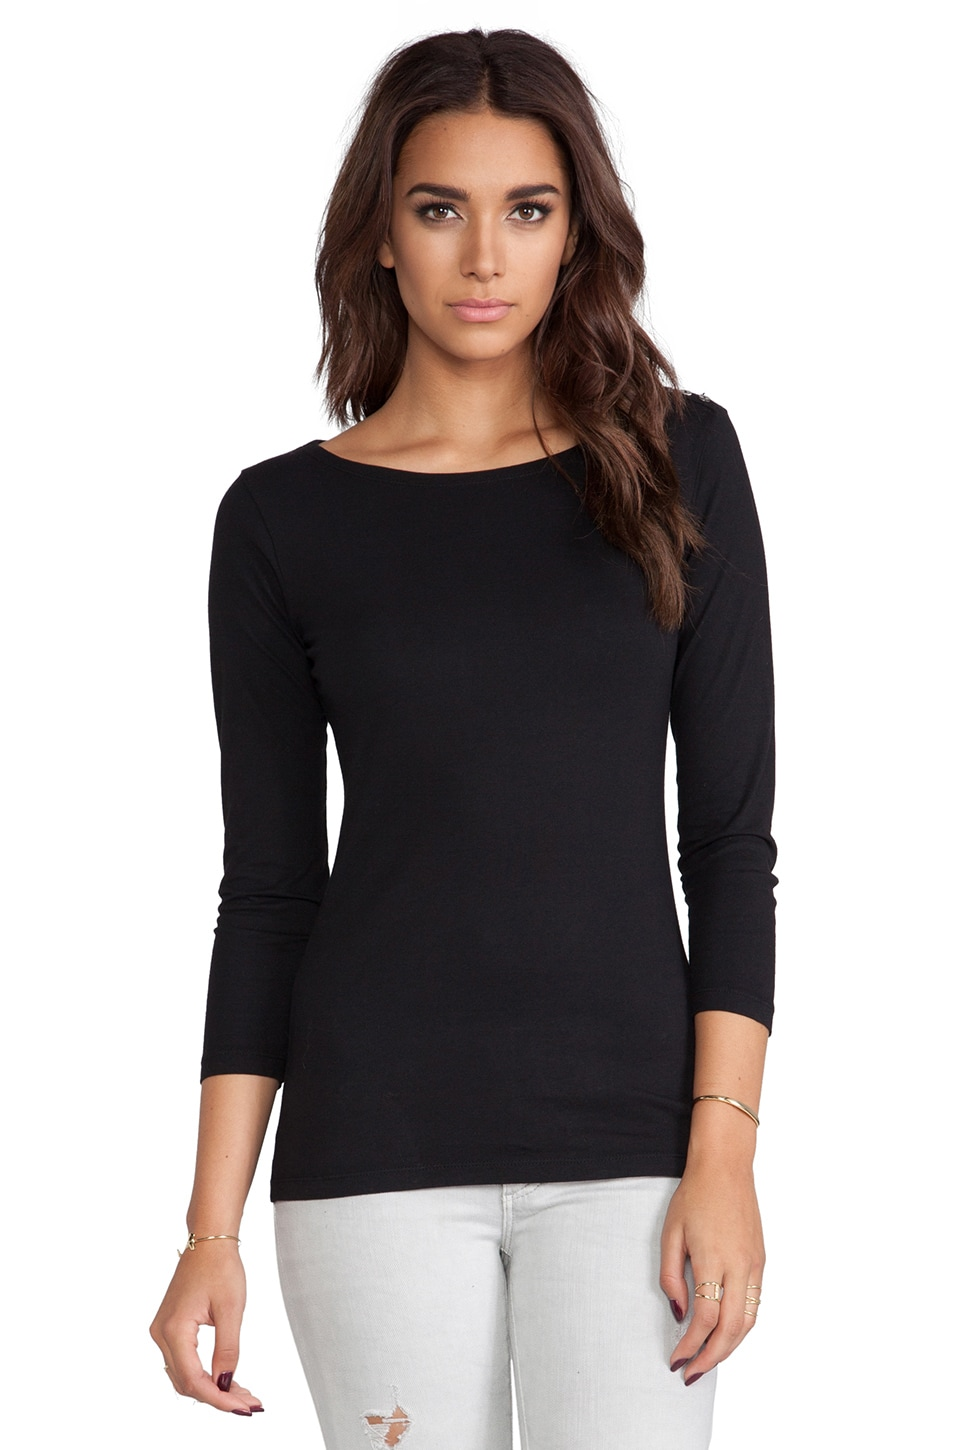 Velvet by Graham & Spencer Natashya Baby Jersey Long Sleeve in Black